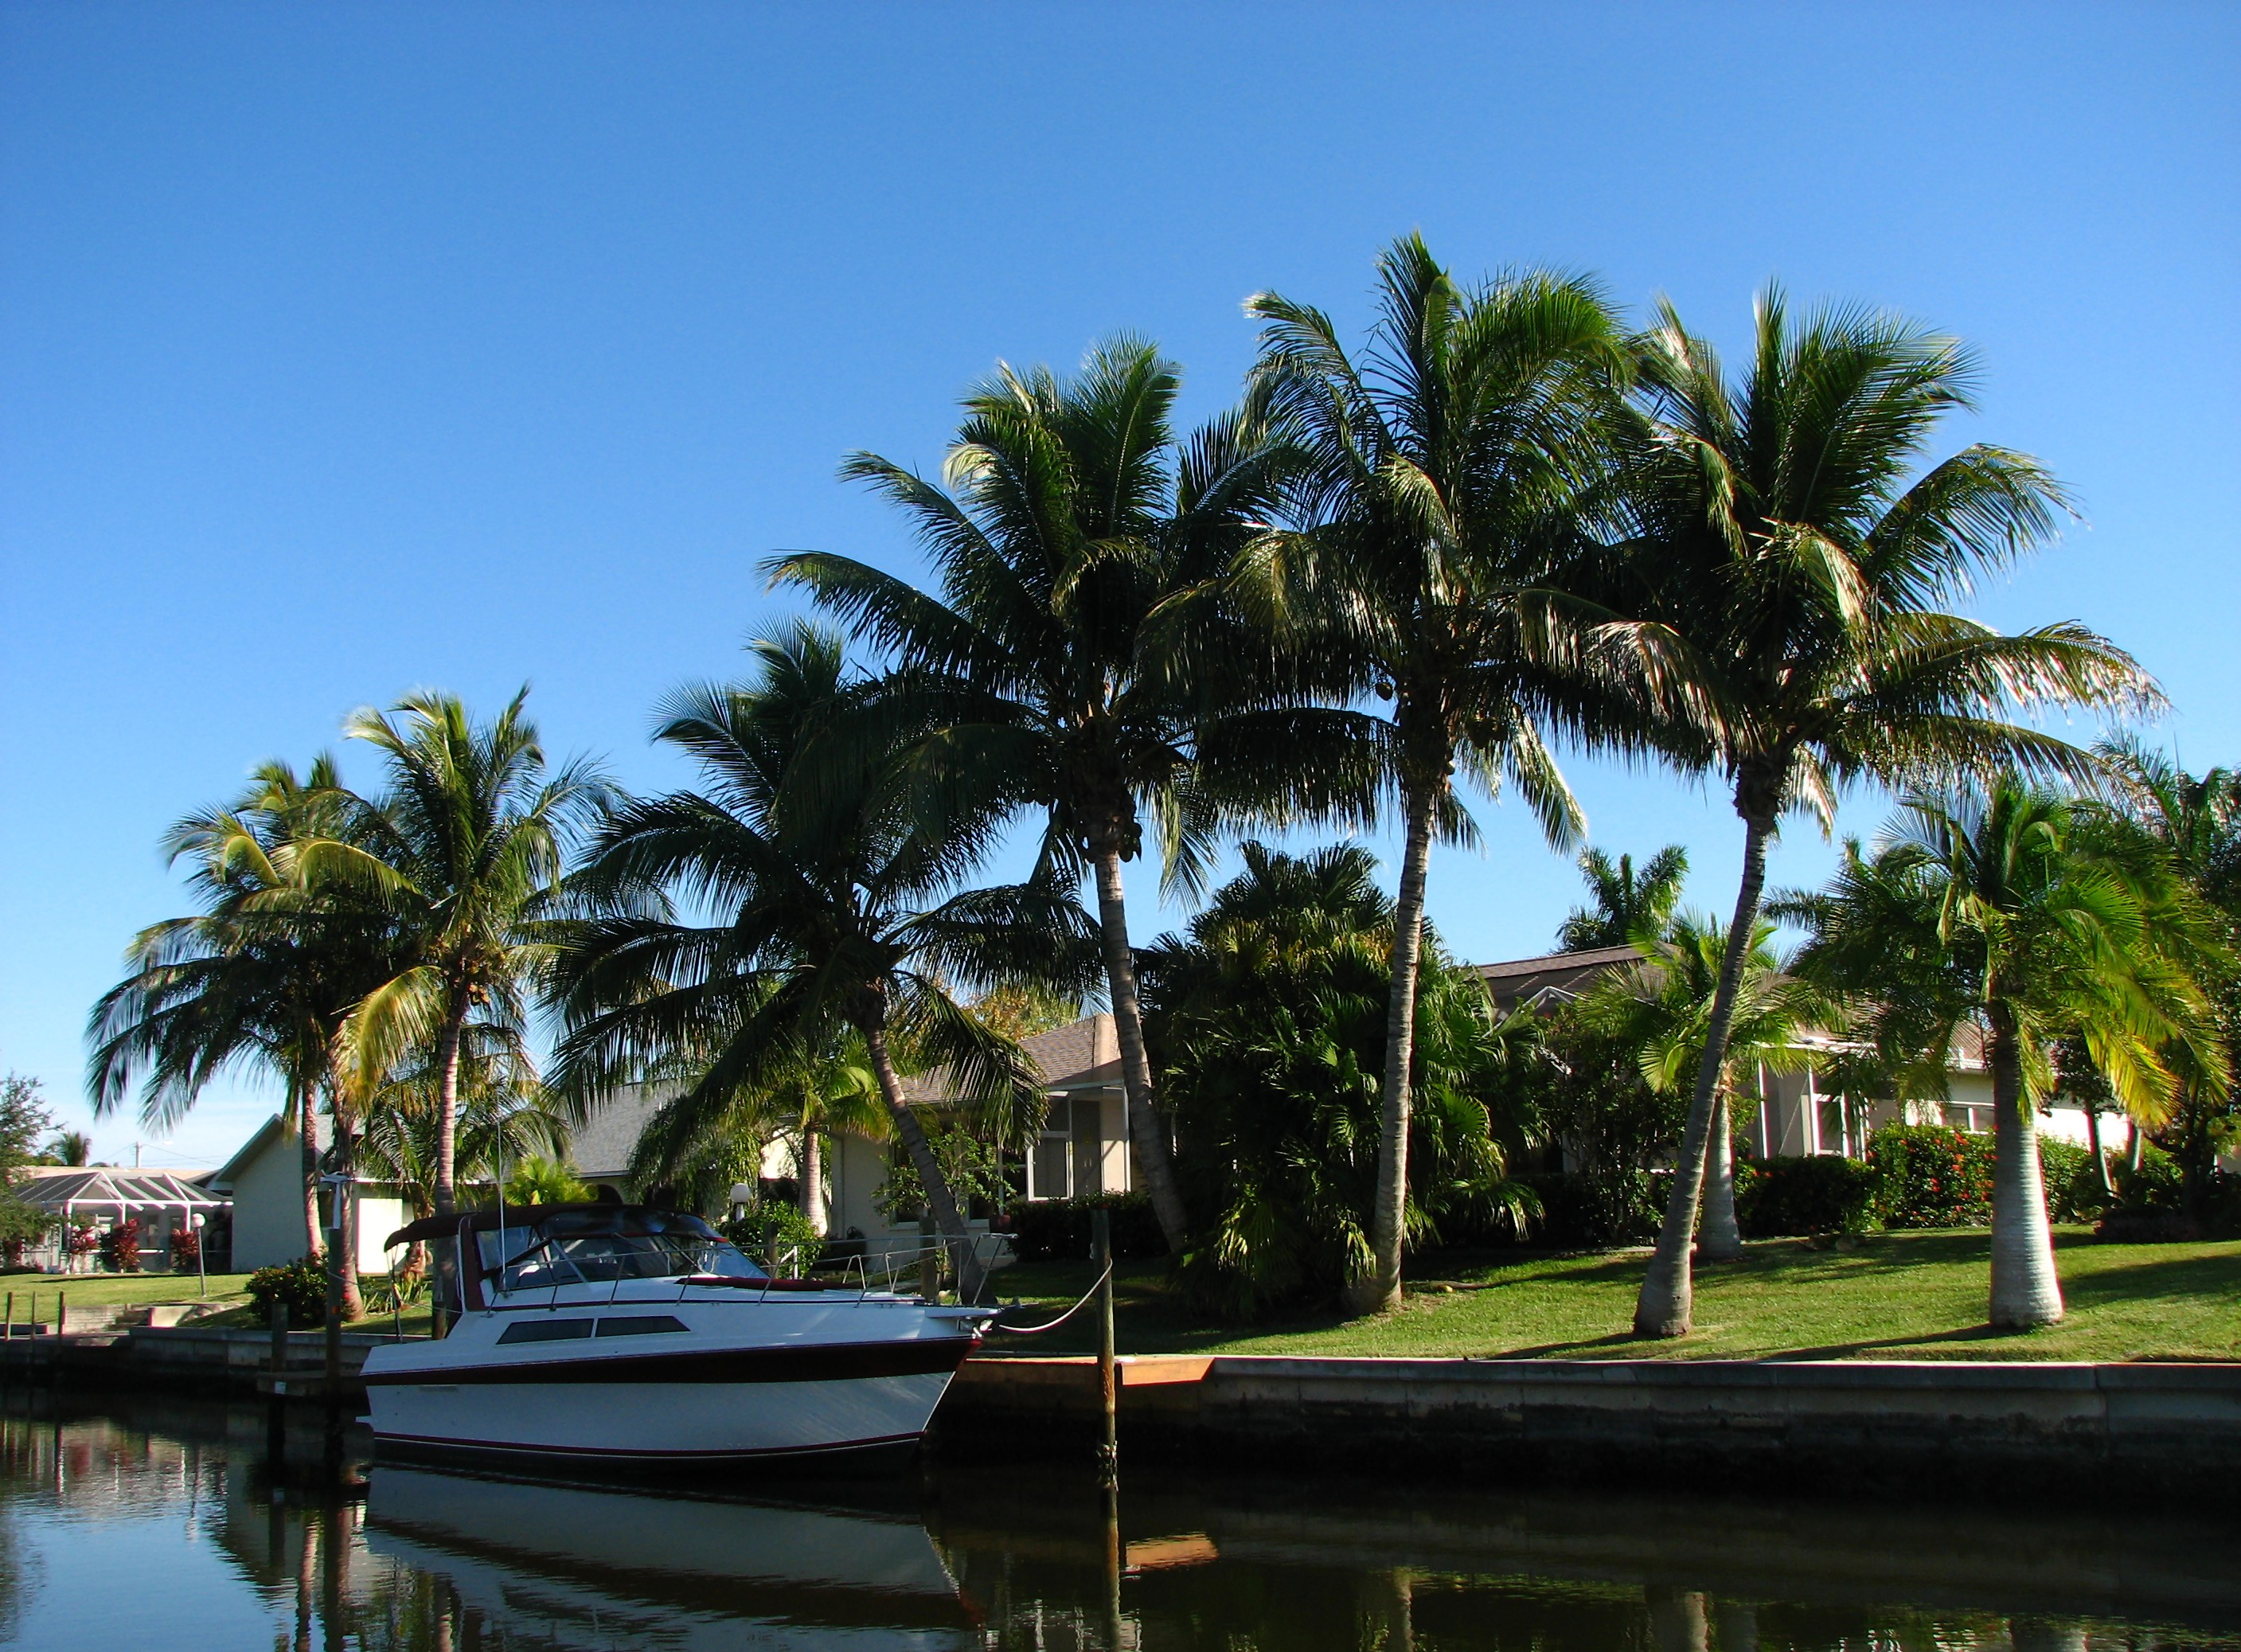 A boat docked by a waterfront house, Blue, Palmtrees, Wealth, Waterfront, HQ Photo